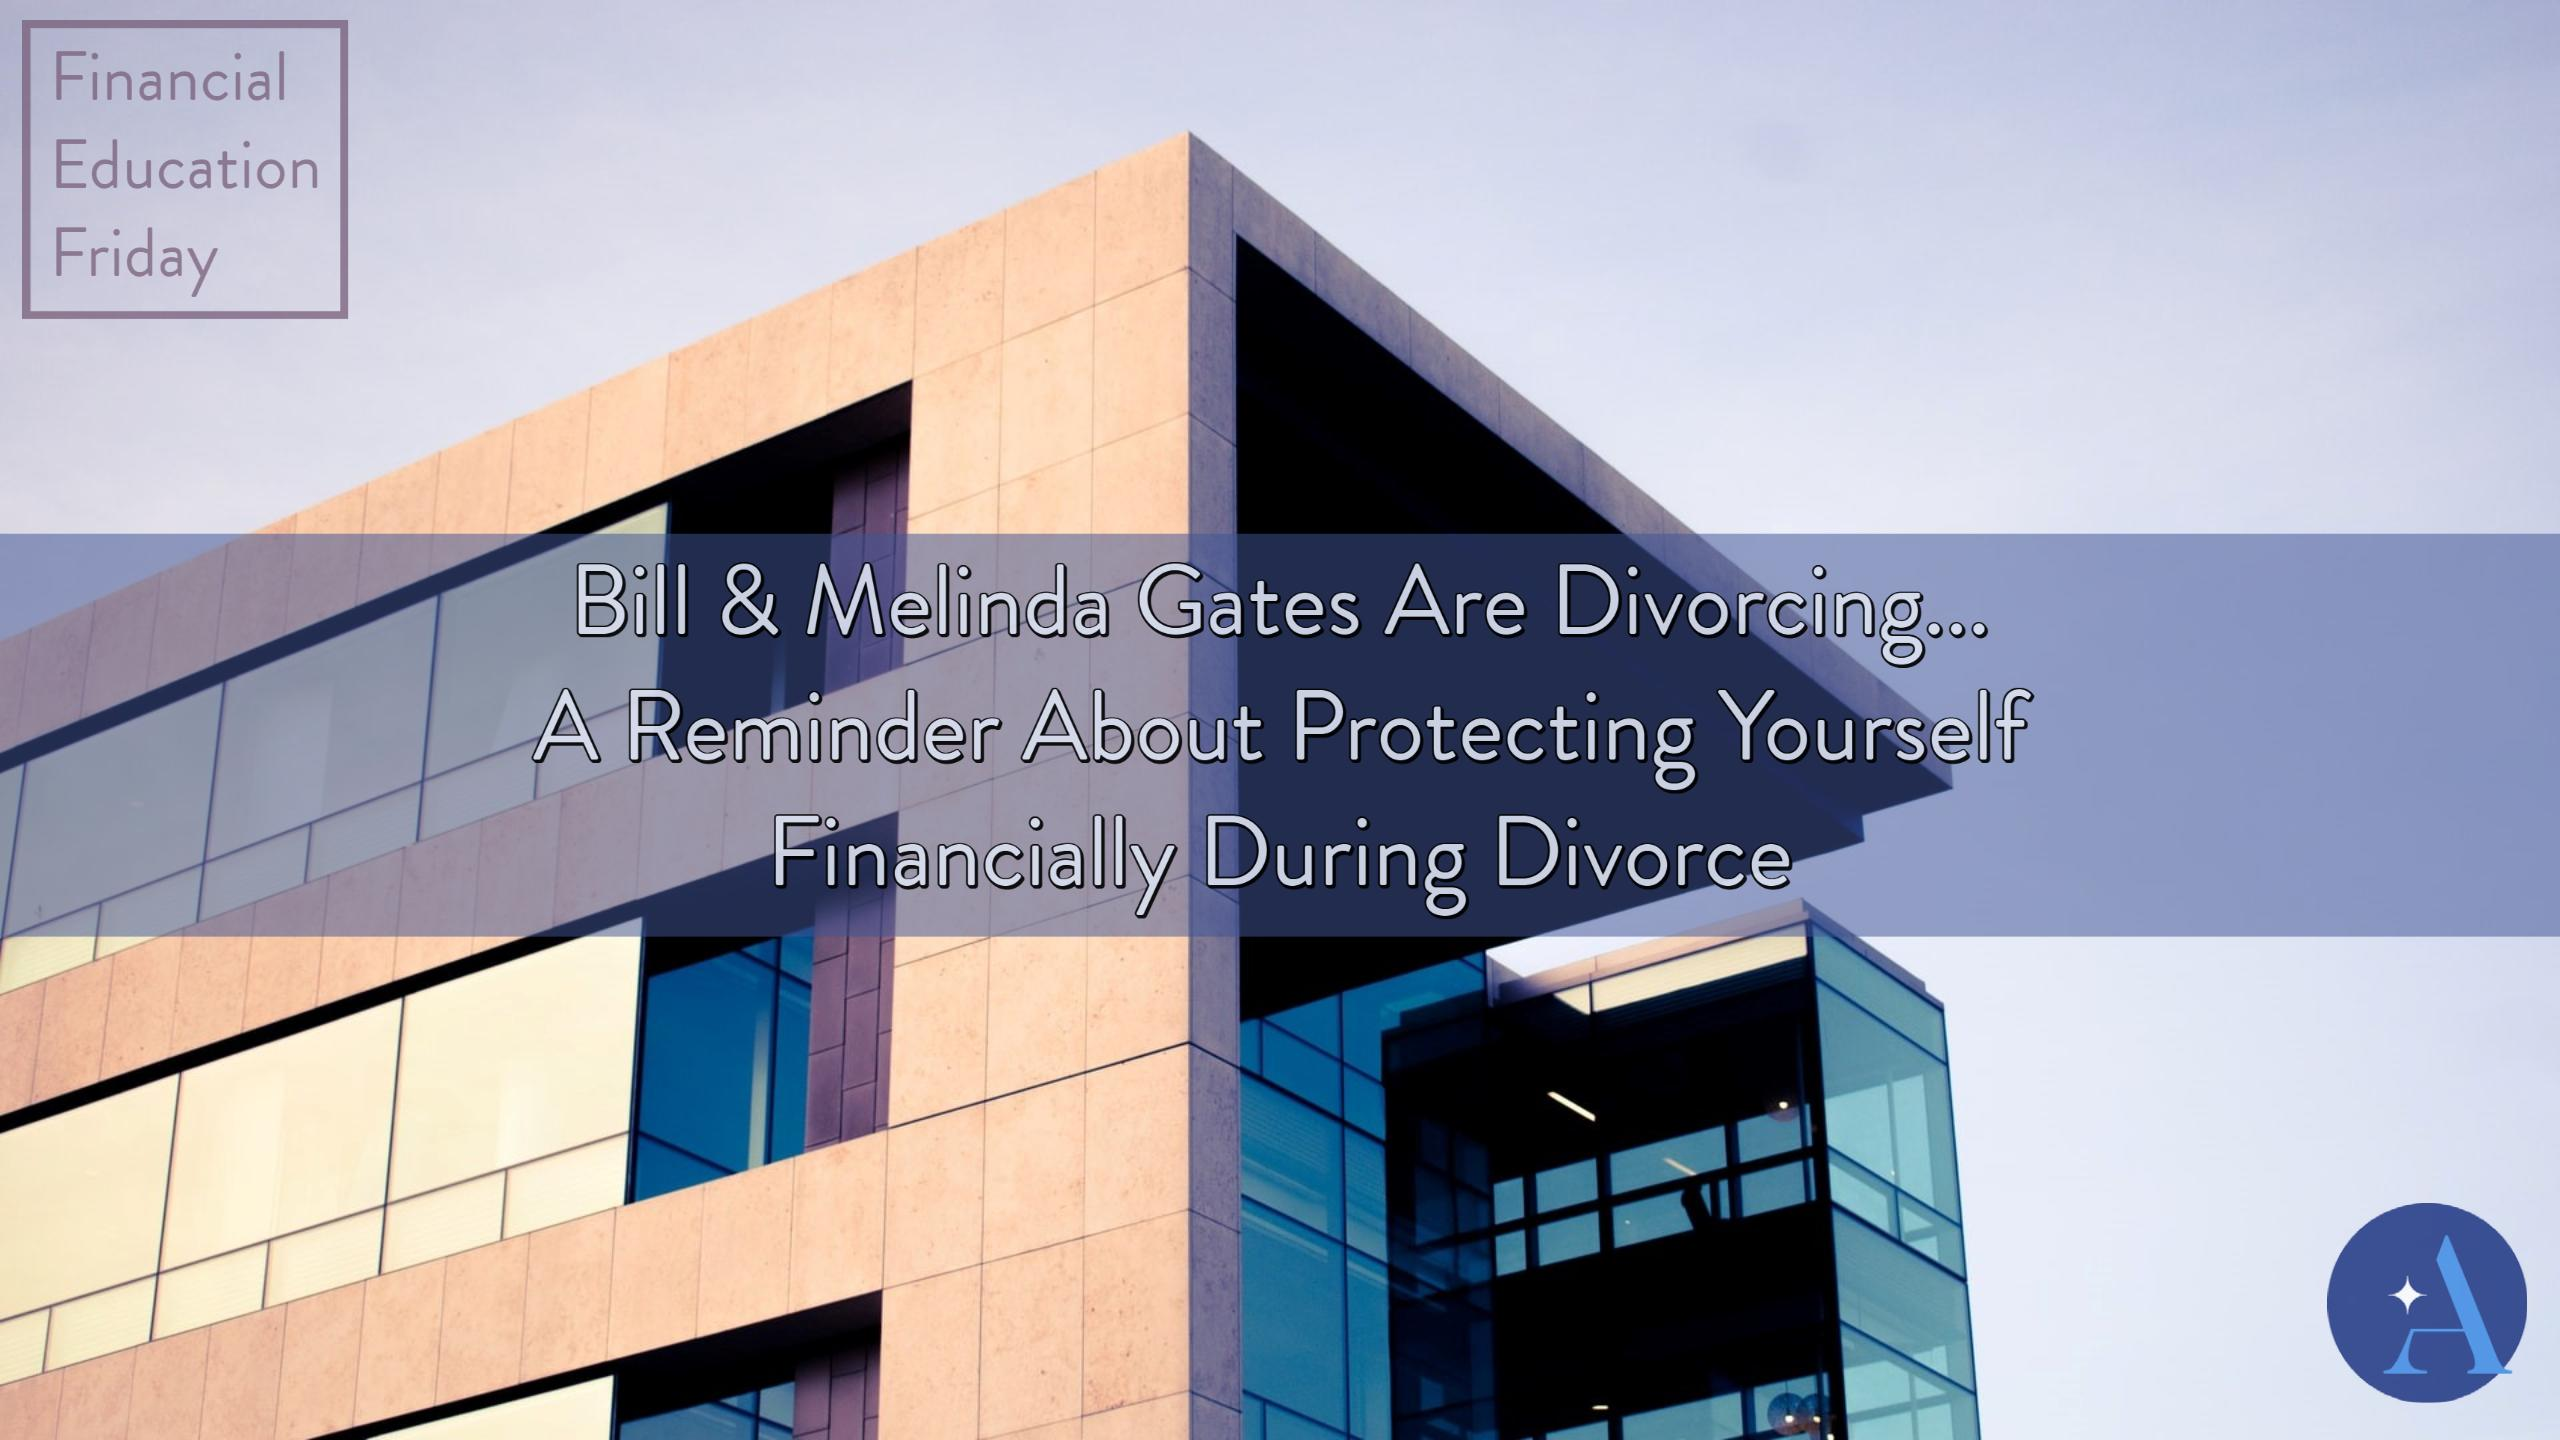 FinEdFriday: Bill & Melinda Gates Are Divorcing... A Reminder About Protecting Yourself Financially During Divorce Thumbnail